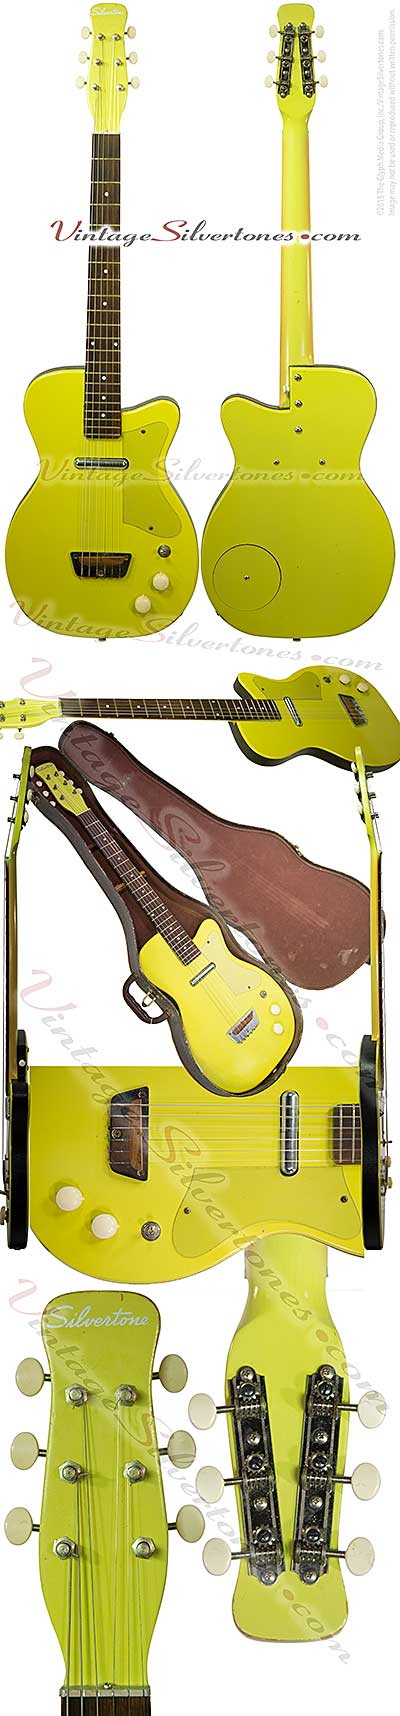 Silvertone 1358 made by Danelectro U1, one pickup, electric guitar, semi-hollow body, yellow finish black vinyl binding, masonite body, lipstick pickup, made in 1955